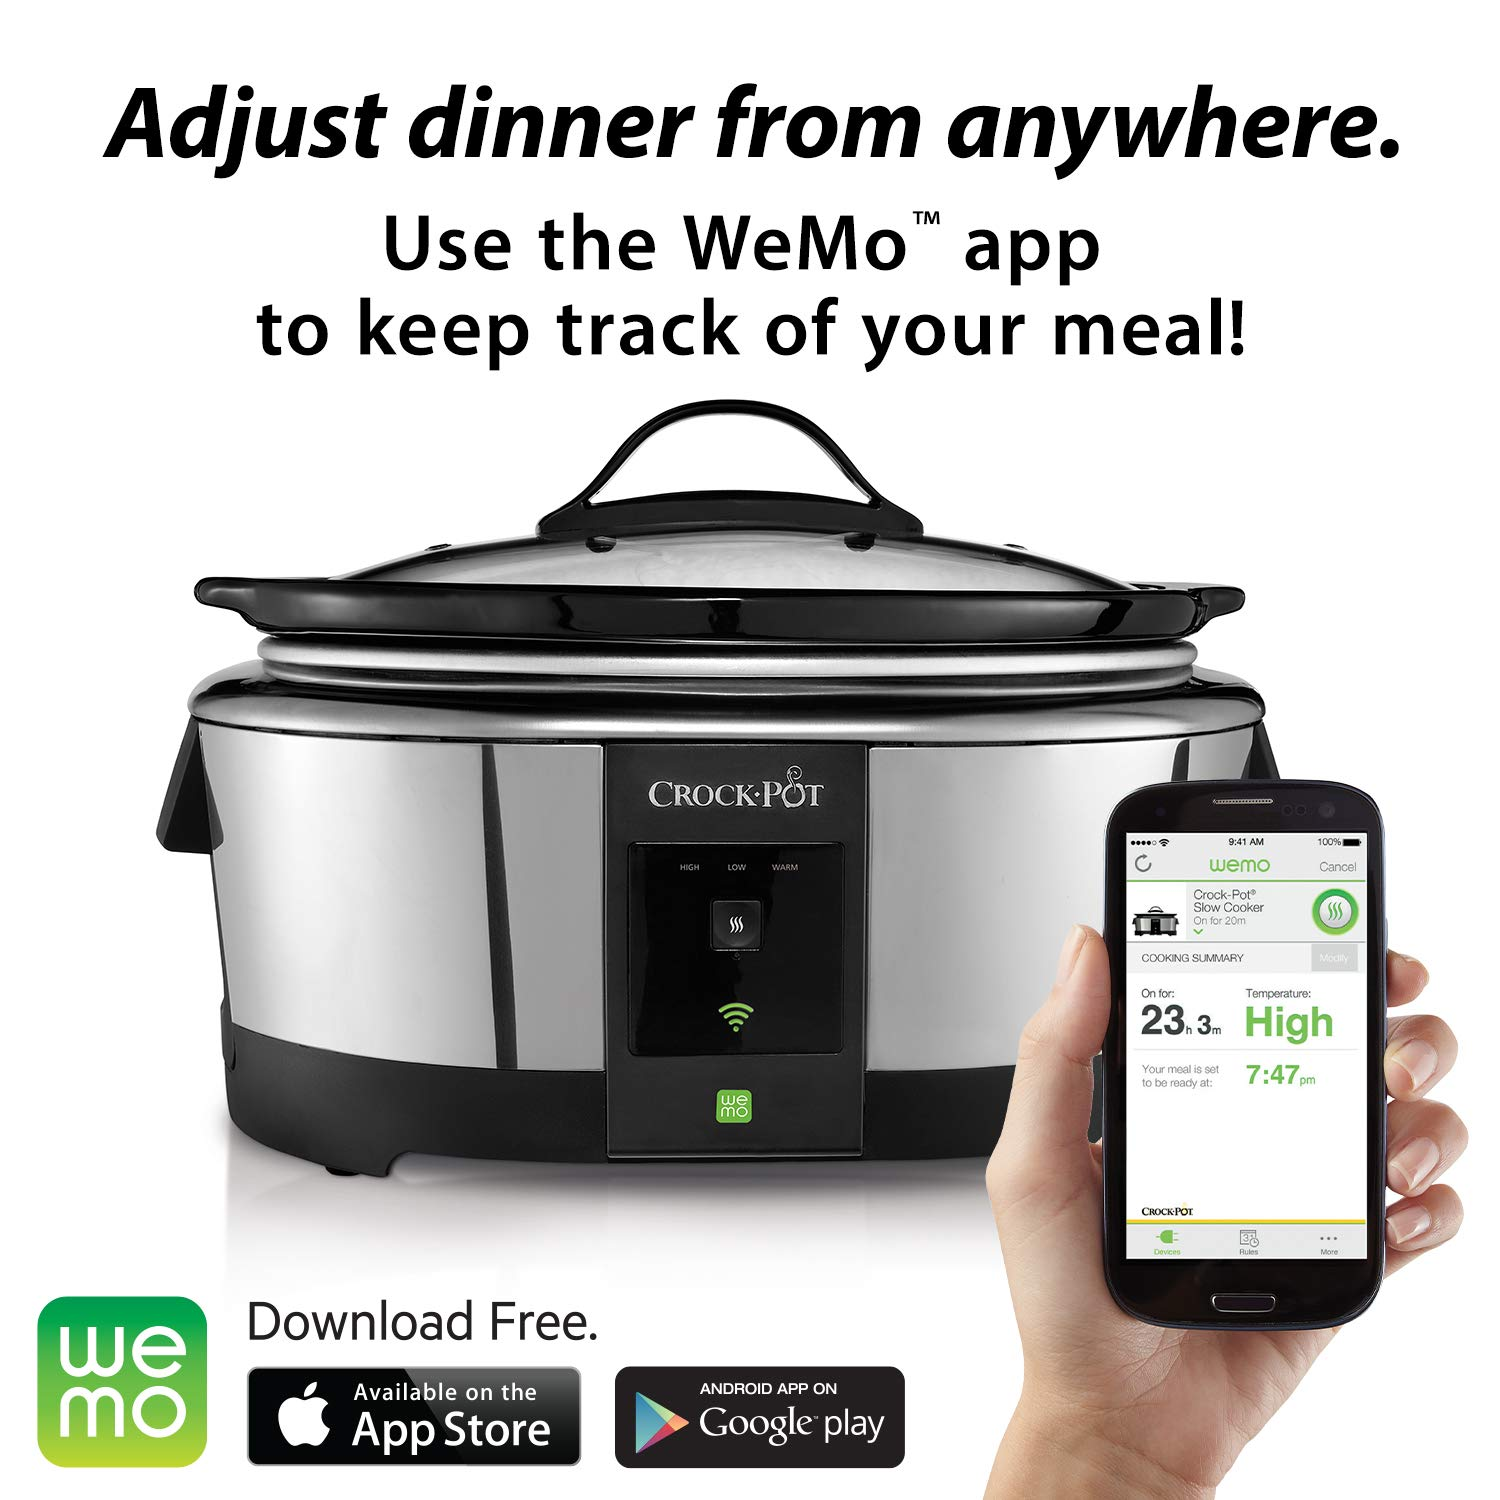 Crock Pot 6 Quart Wemo Enabled Smart Slow Cooker Belkin Adds Light Switch Looks To Tack On Android Compatibility Stainless Steel Kitchen Dining